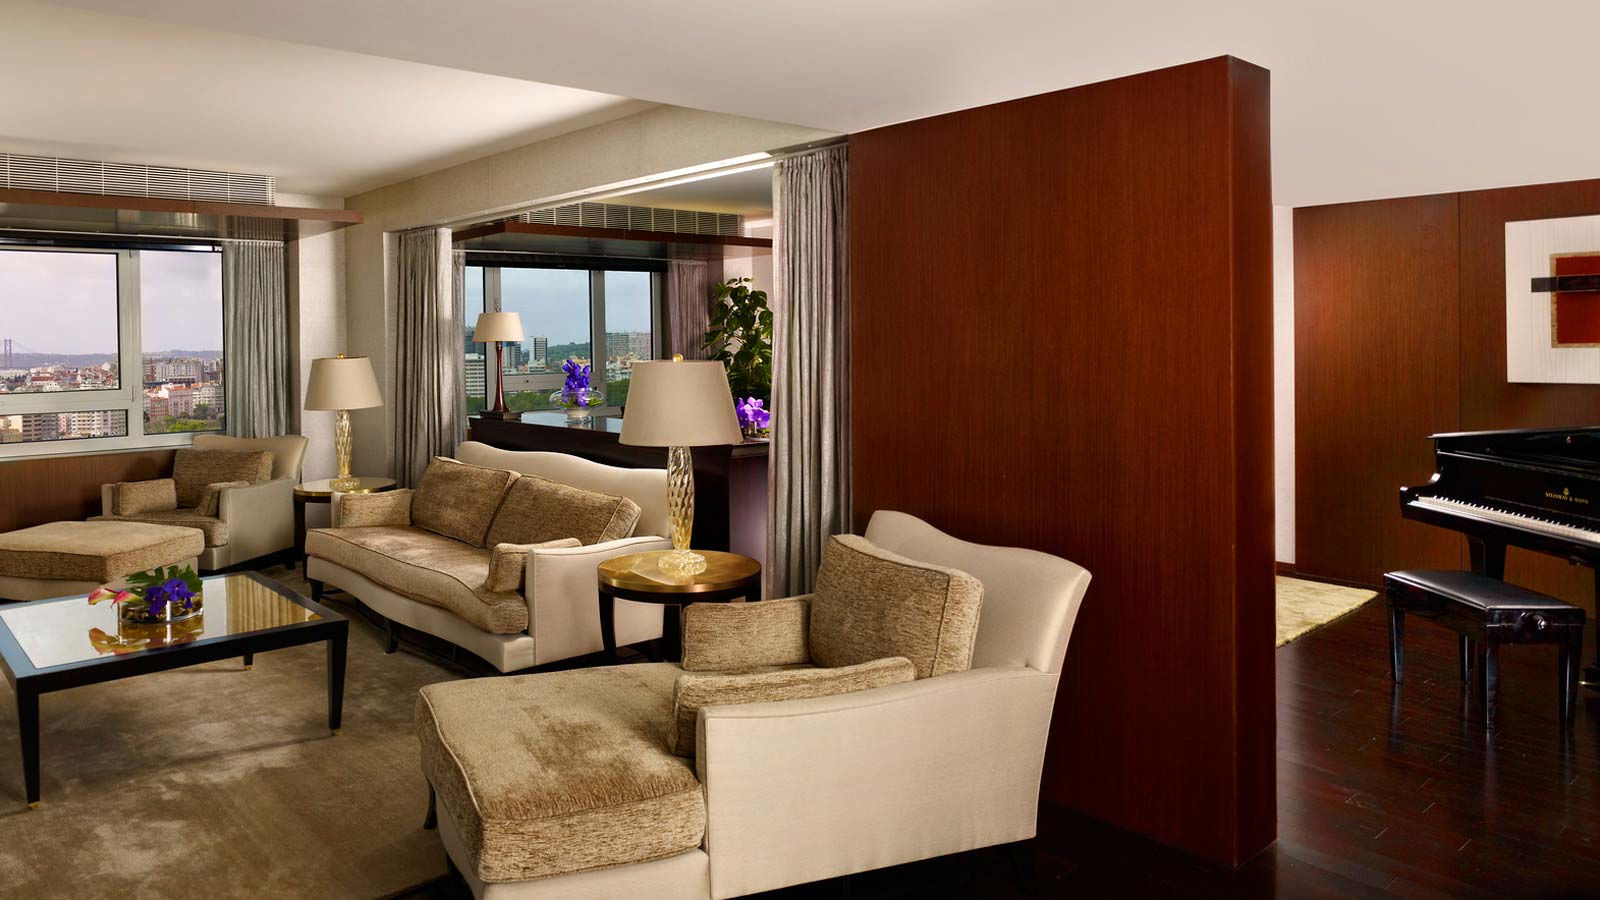 Presidential Suite - Urban luxury